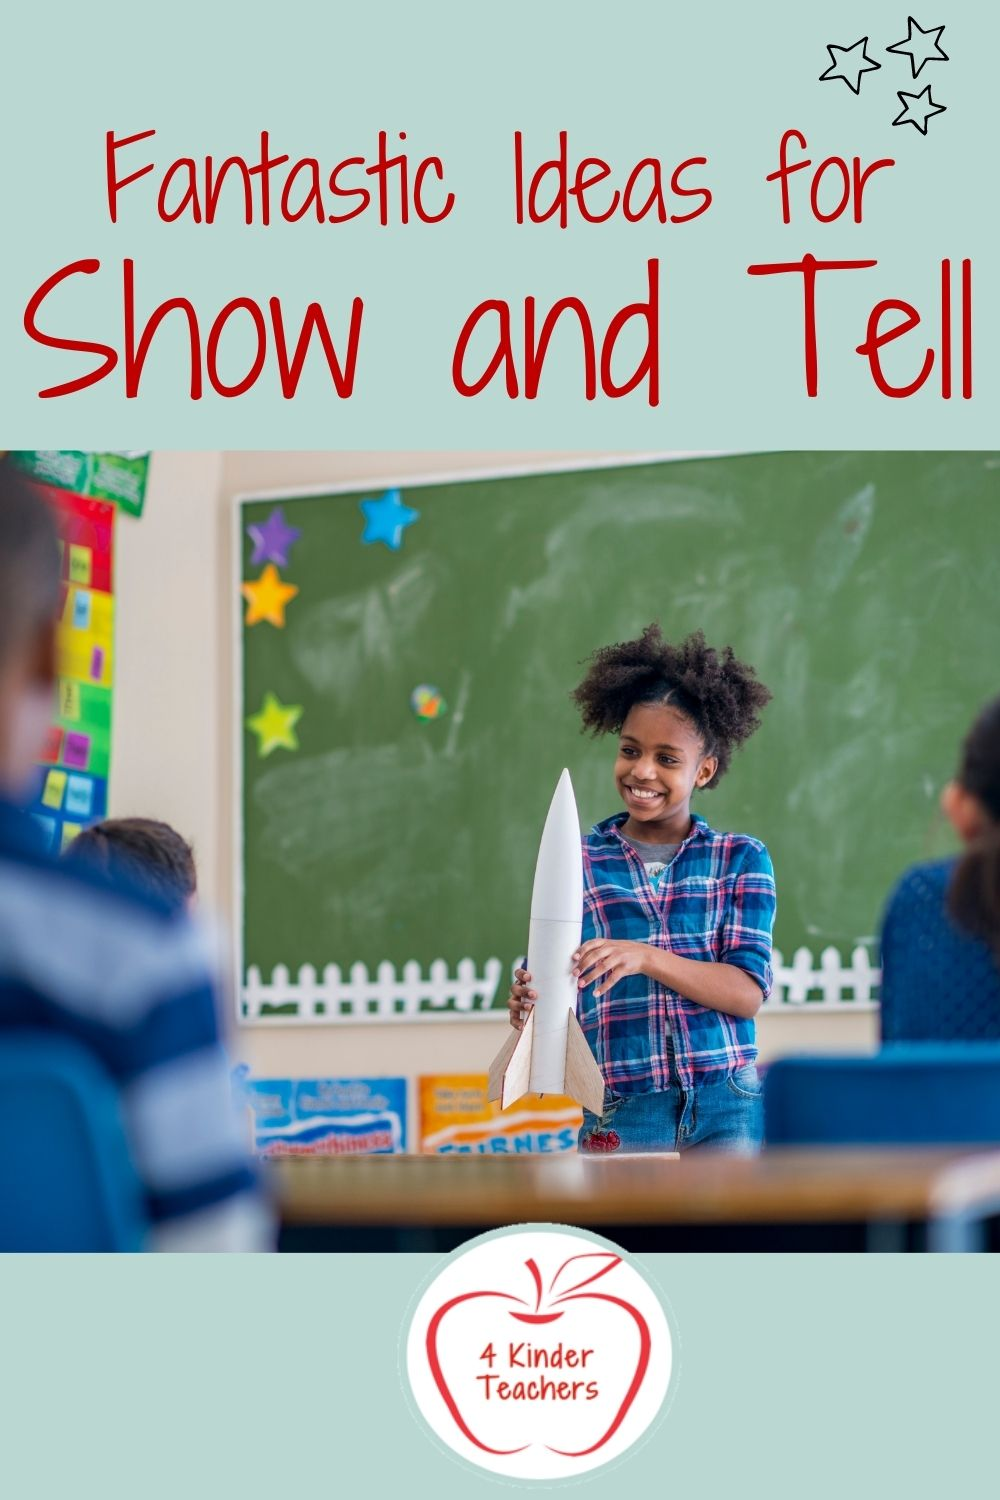 3 Fantastic Ideas for Show and Tell for Teachers